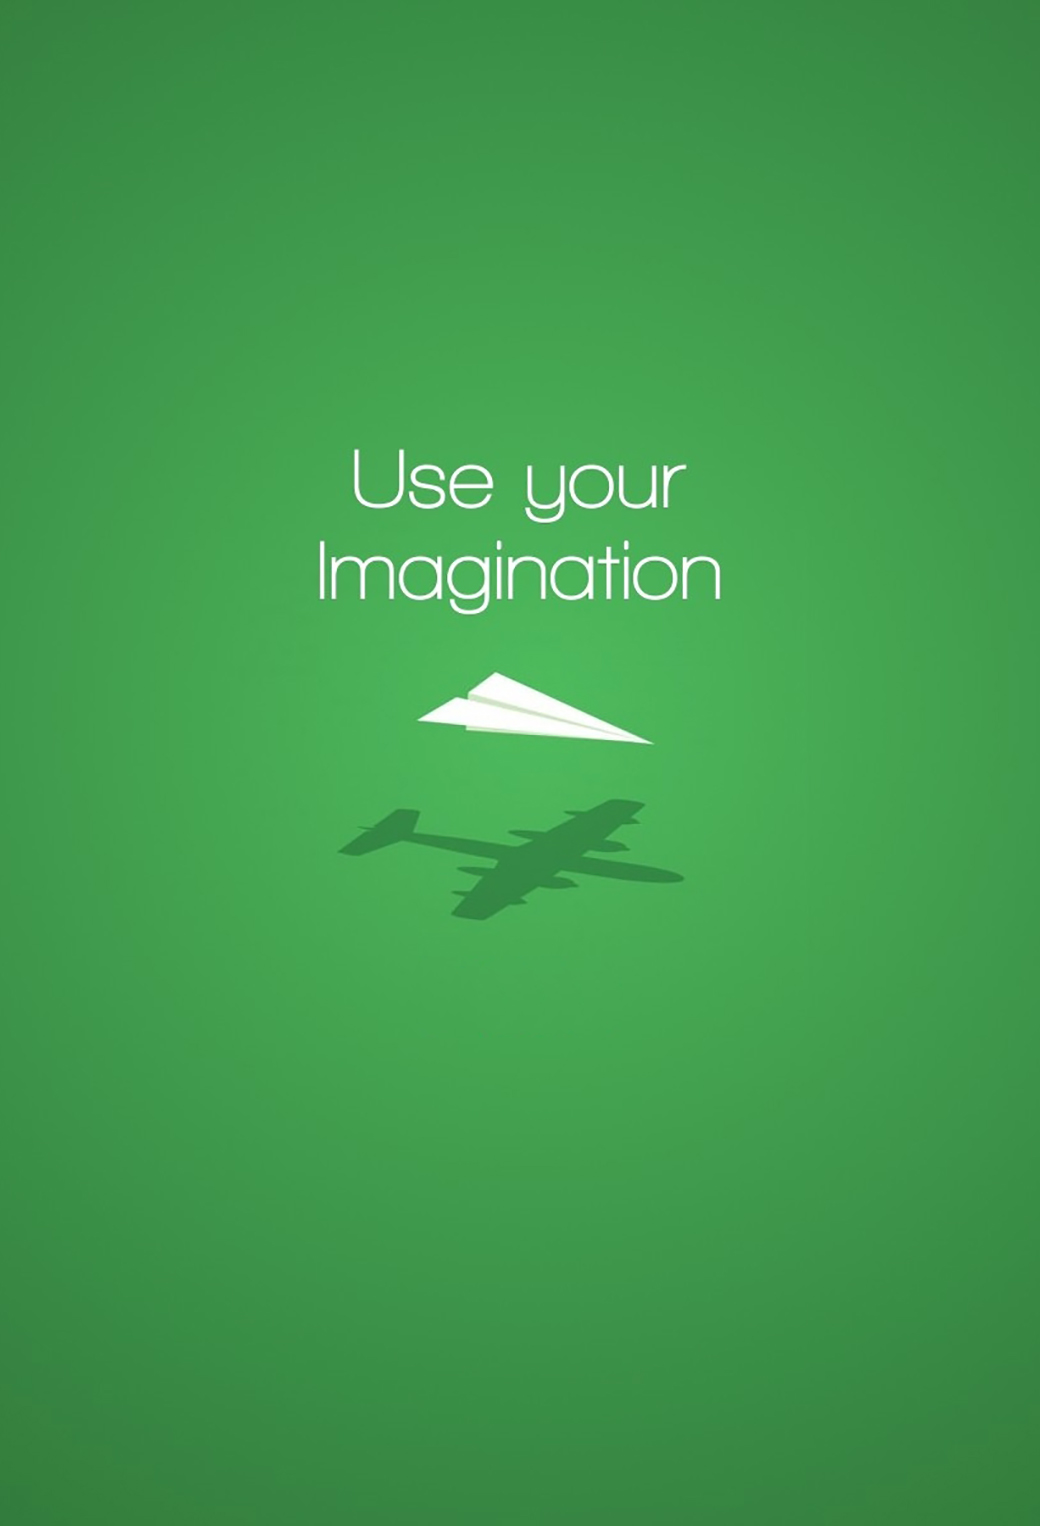 Use Imagination 3Wallpapers iPhone Parallax Use Imagination